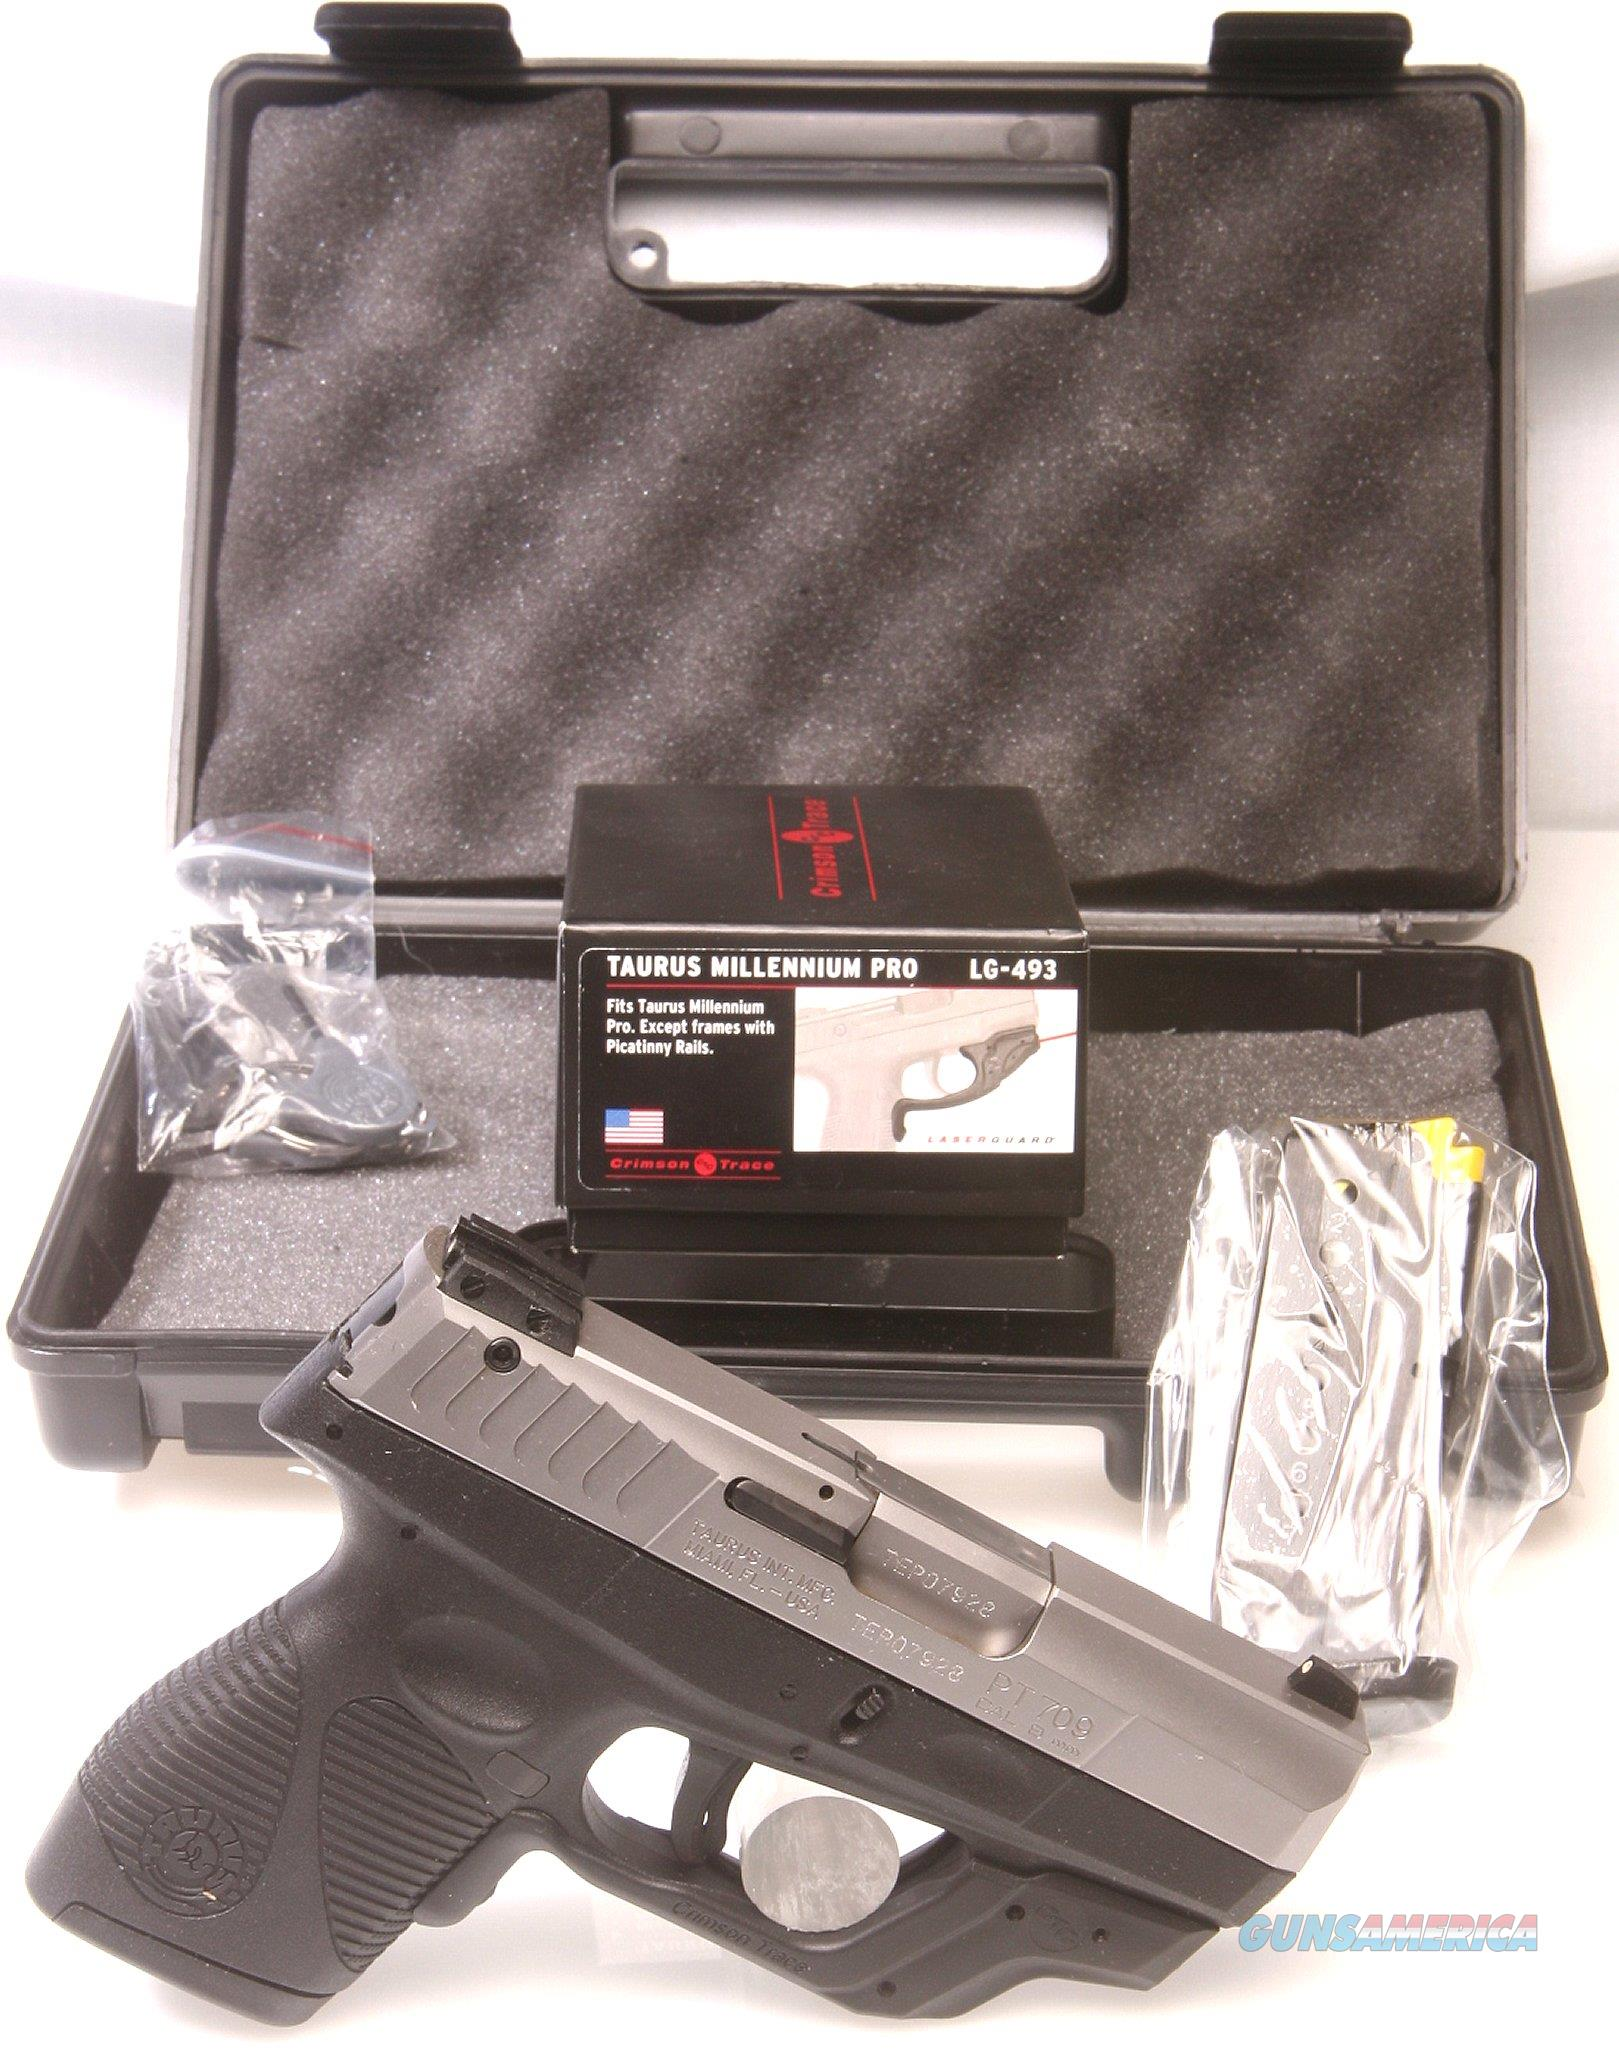 Taurus 9mm PT709 Compact Semi-Auto with Crimson Trace Laser  Guns > Pistols > Taurus Pistols > Semi Auto Pistols > Polymer Frame